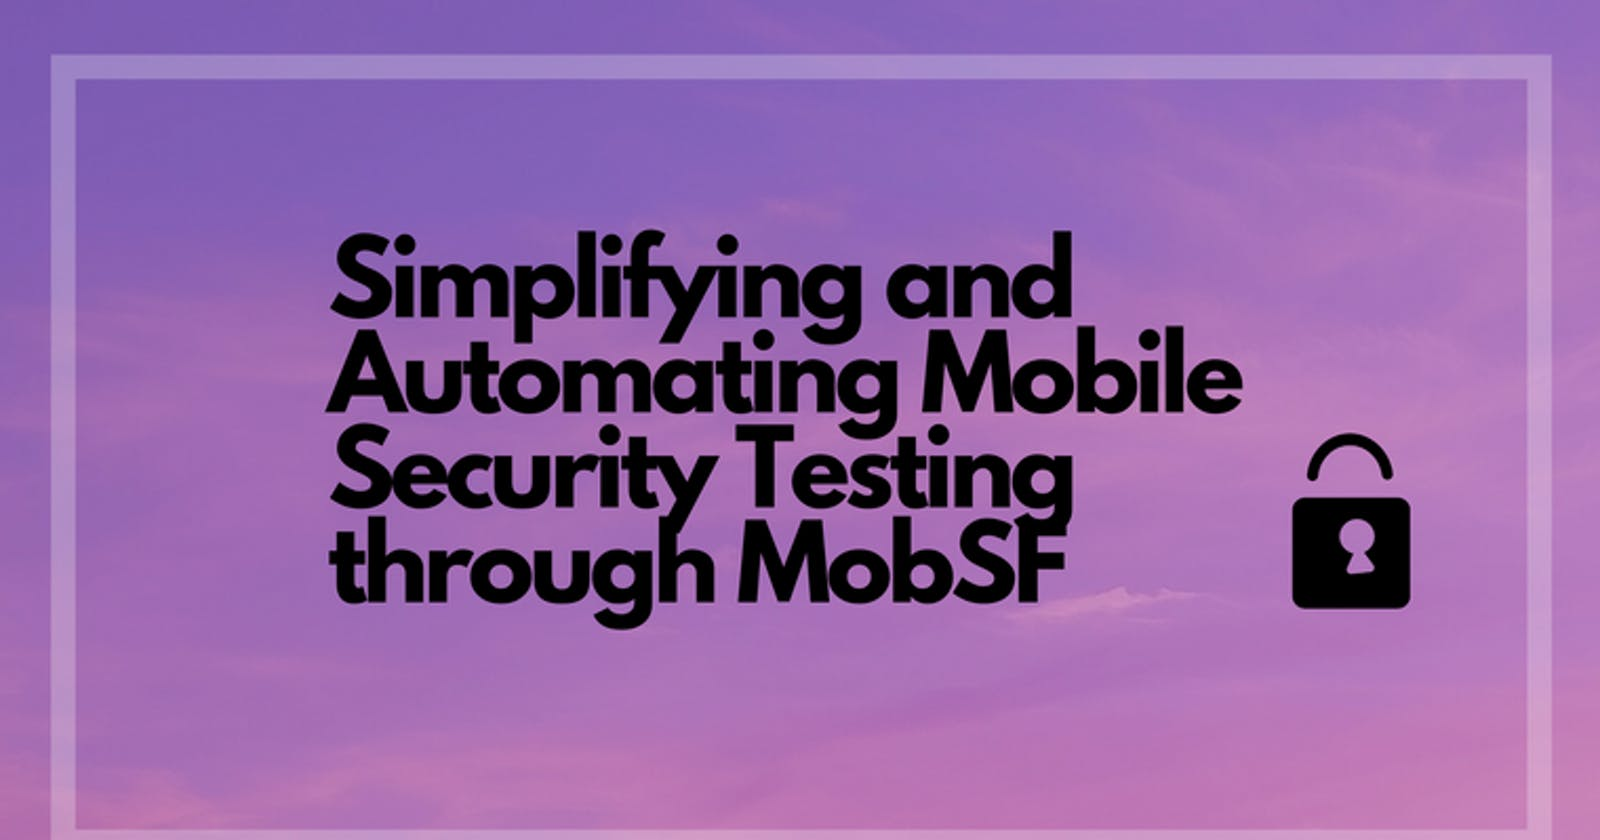 Simplifying and Automating Mobile Security Testing through MobSF